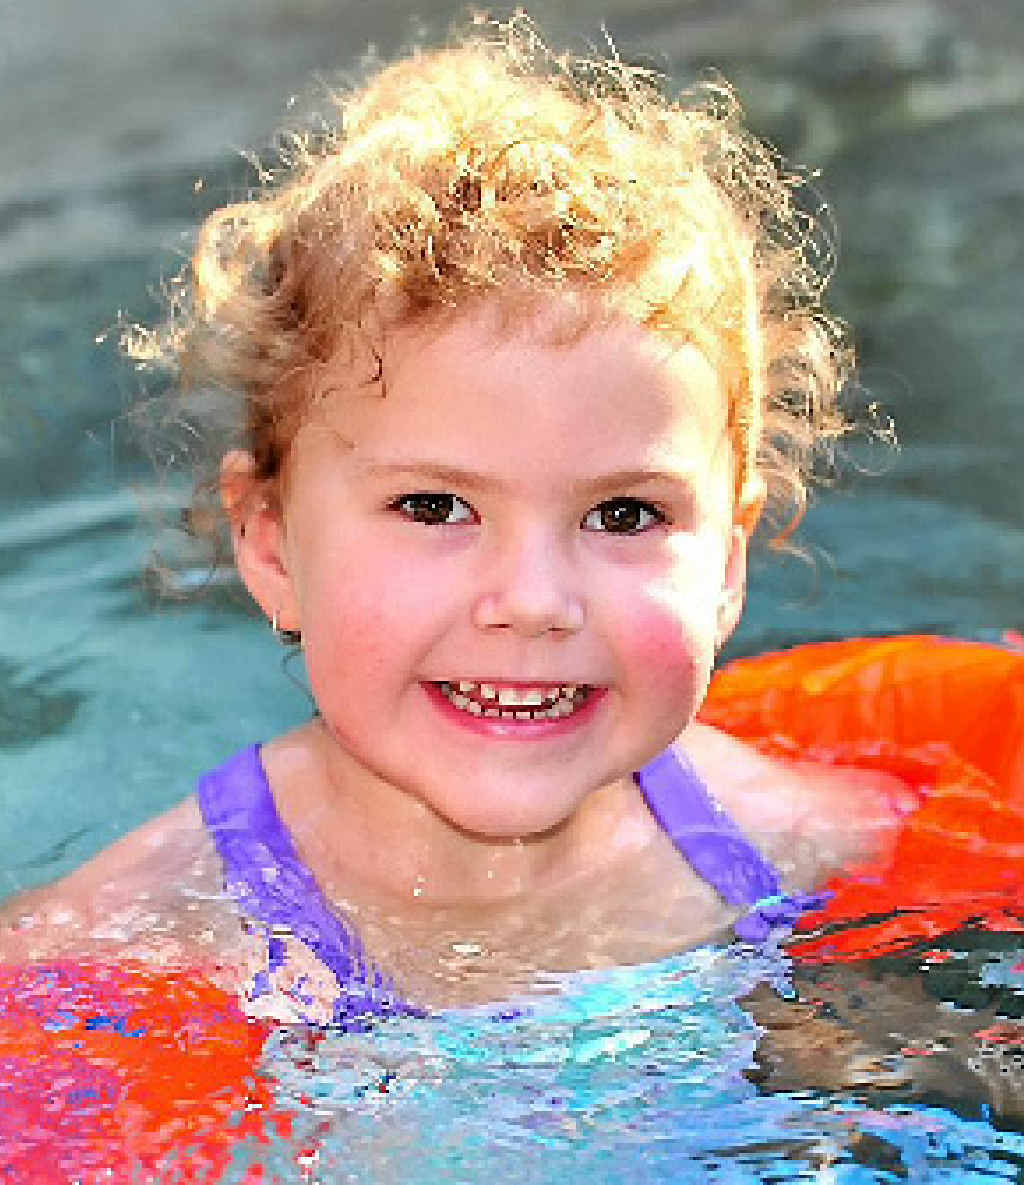 STRANGERS TO THE RESCUE: Little Frankee-Lee Shaw will have surgery in the US to restore her hearing thanks to the community's generosity.